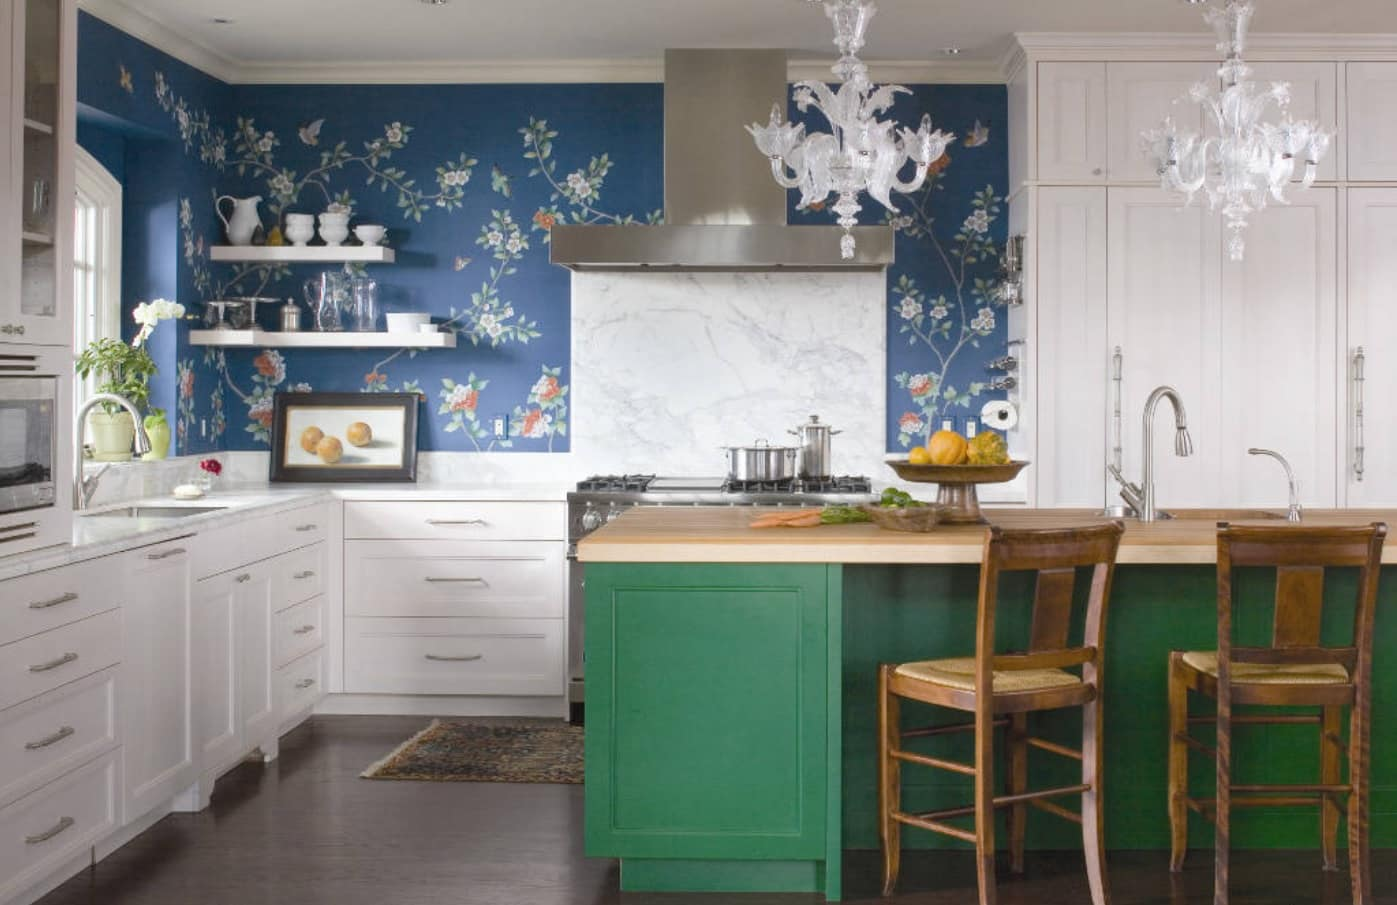 10 Best Kitchen Walls Design Ideas. Blue naturalistic wallpaper for casual styled area